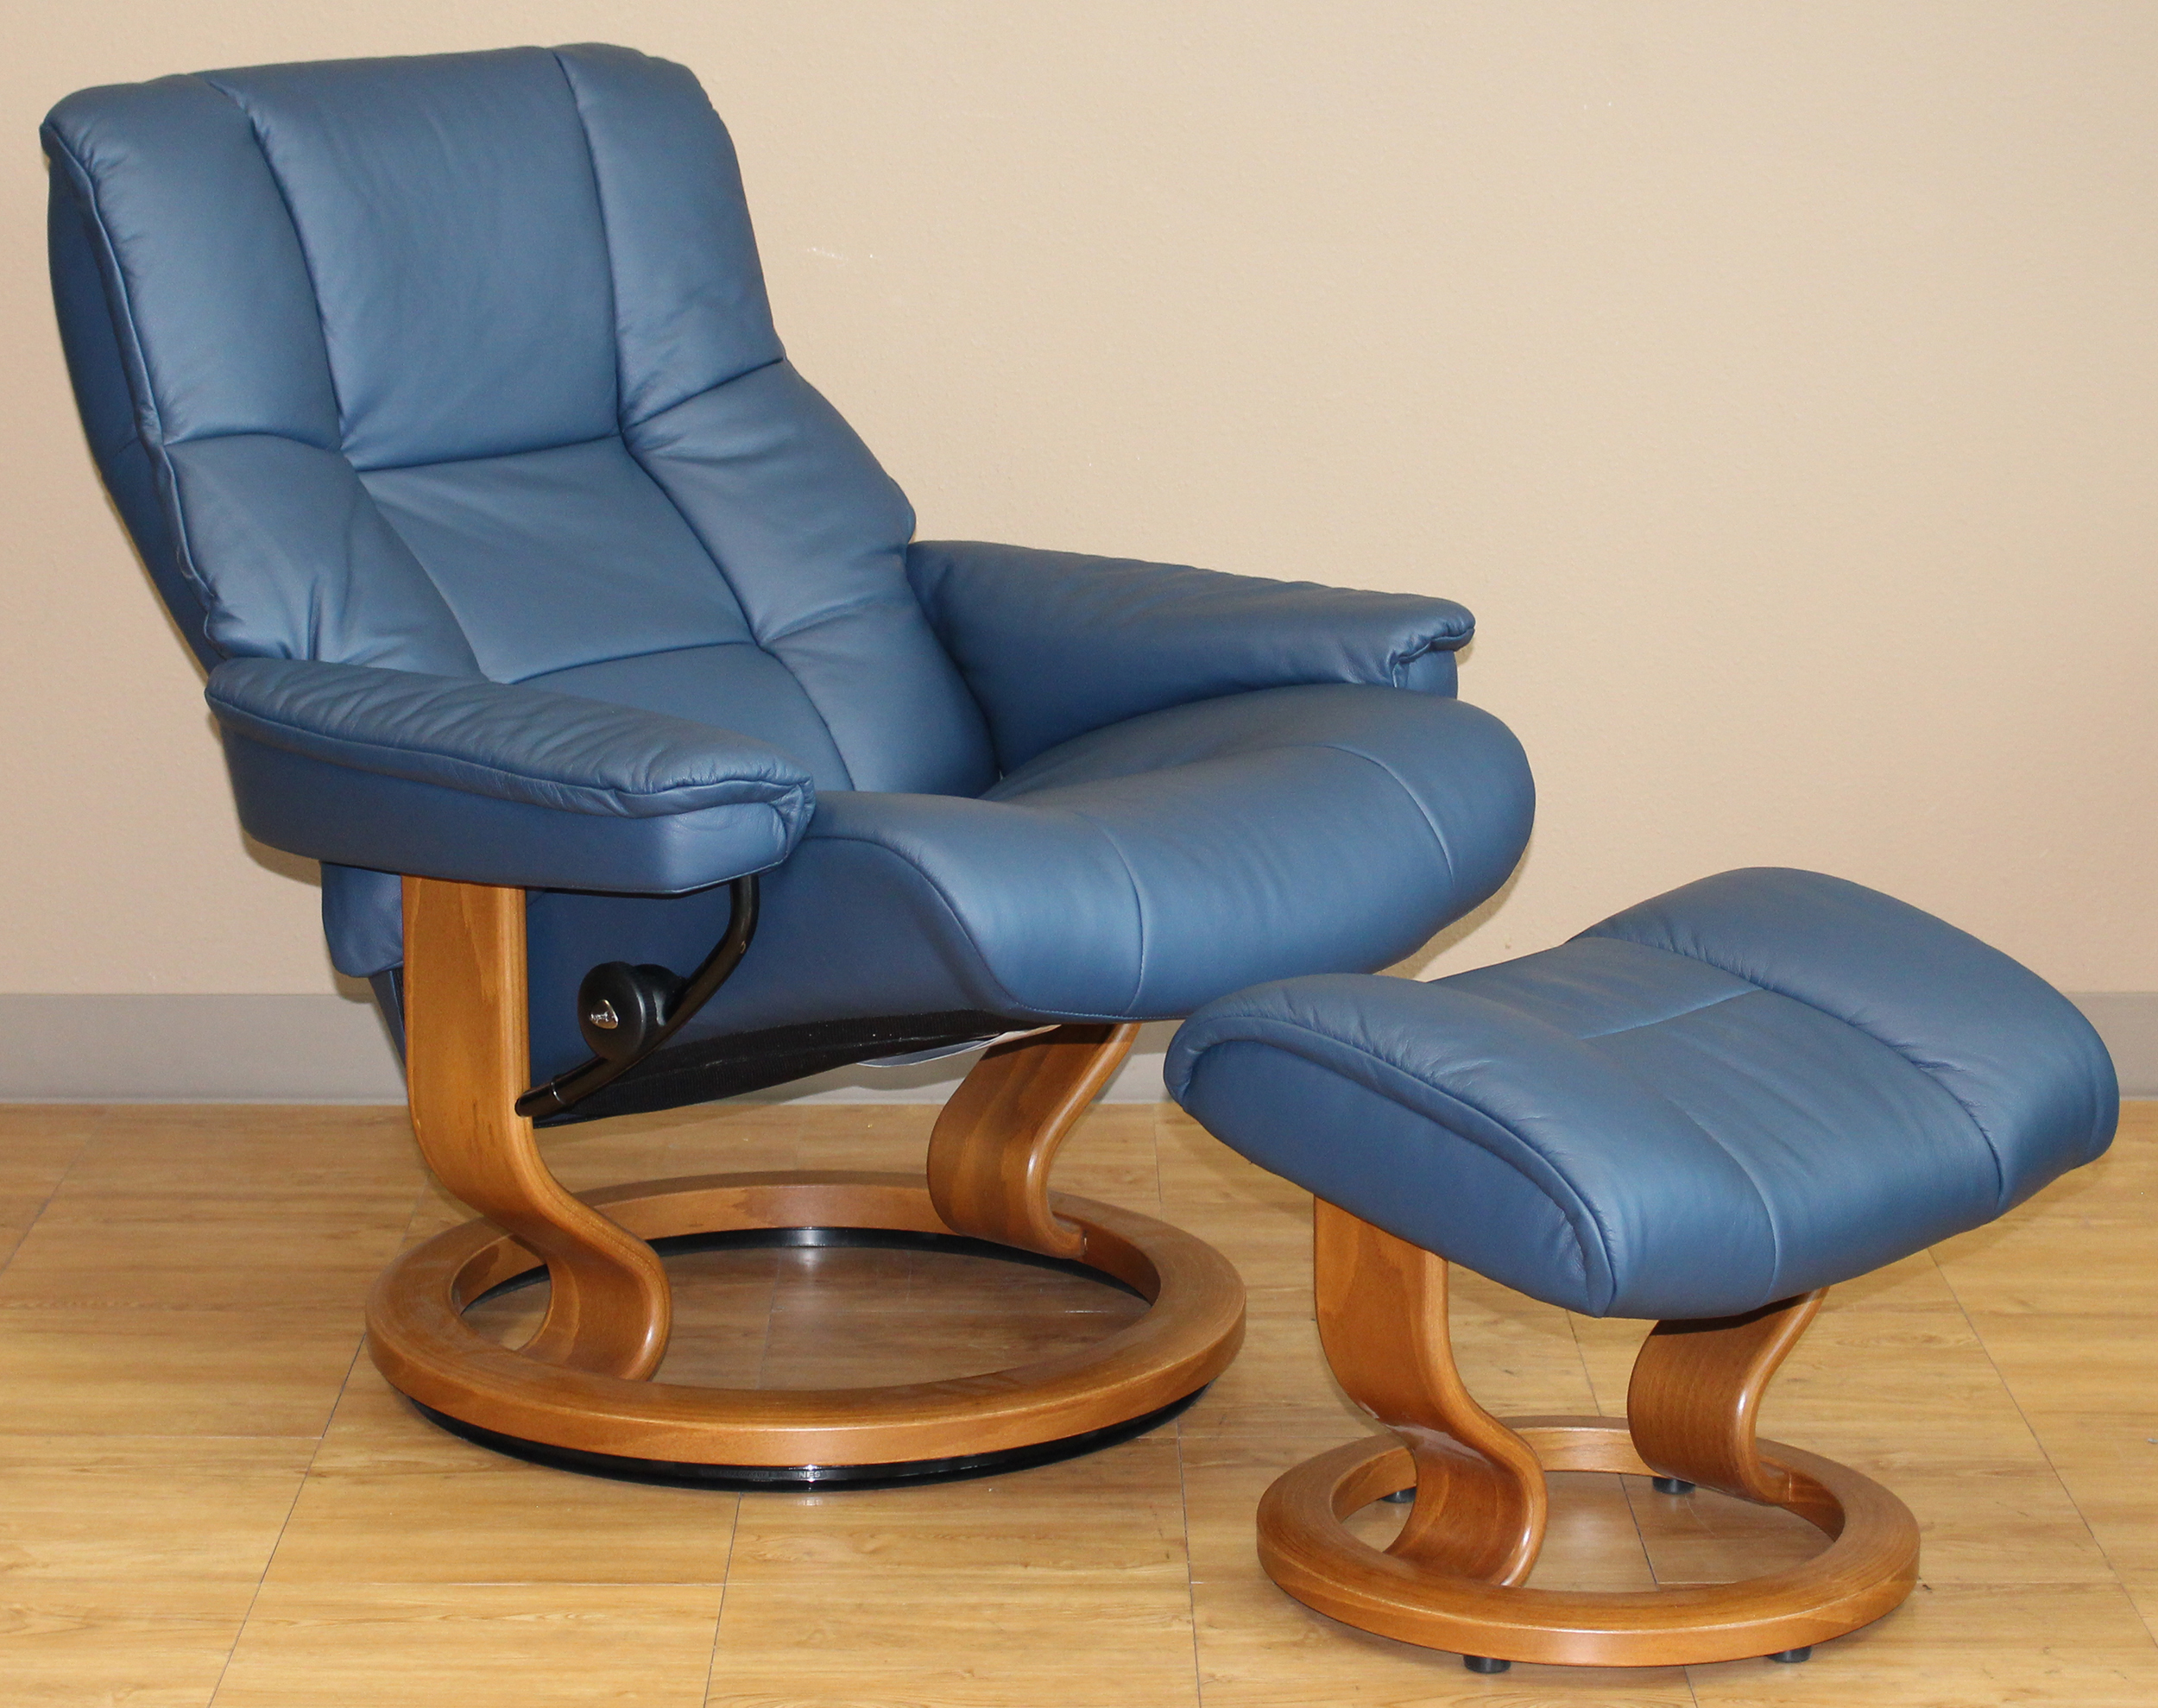 stressless mayfair paloma oxford blue leather recliner chair and ottoman by ekornes stressless. Black Bedroom Furniture Sets. Home Design Ideas